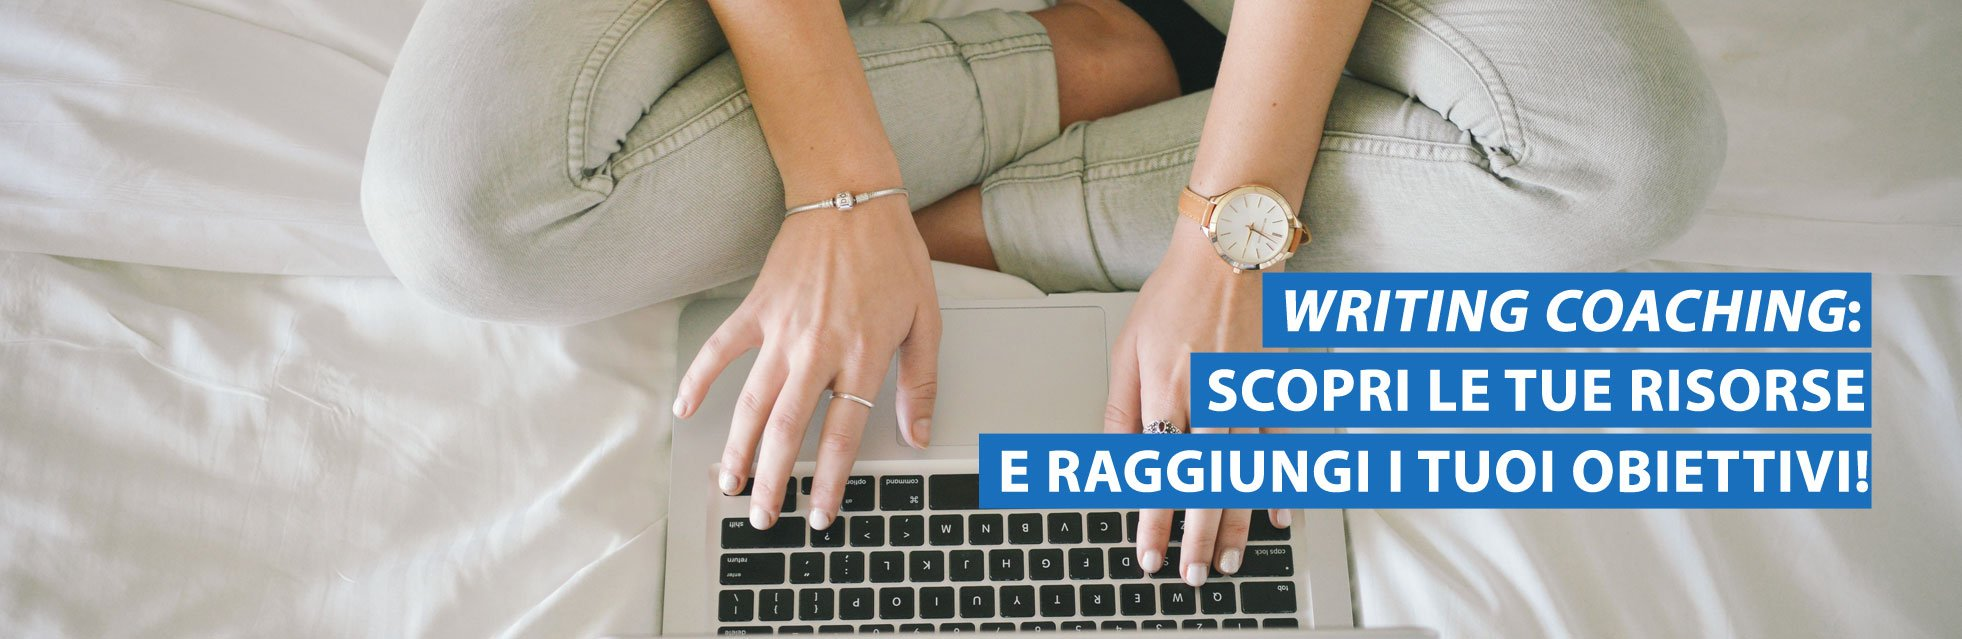 vivere-di-scrittura-con-self-publishing-e-web-marketing-editoriale-servizio-di-mental-writing-coaching